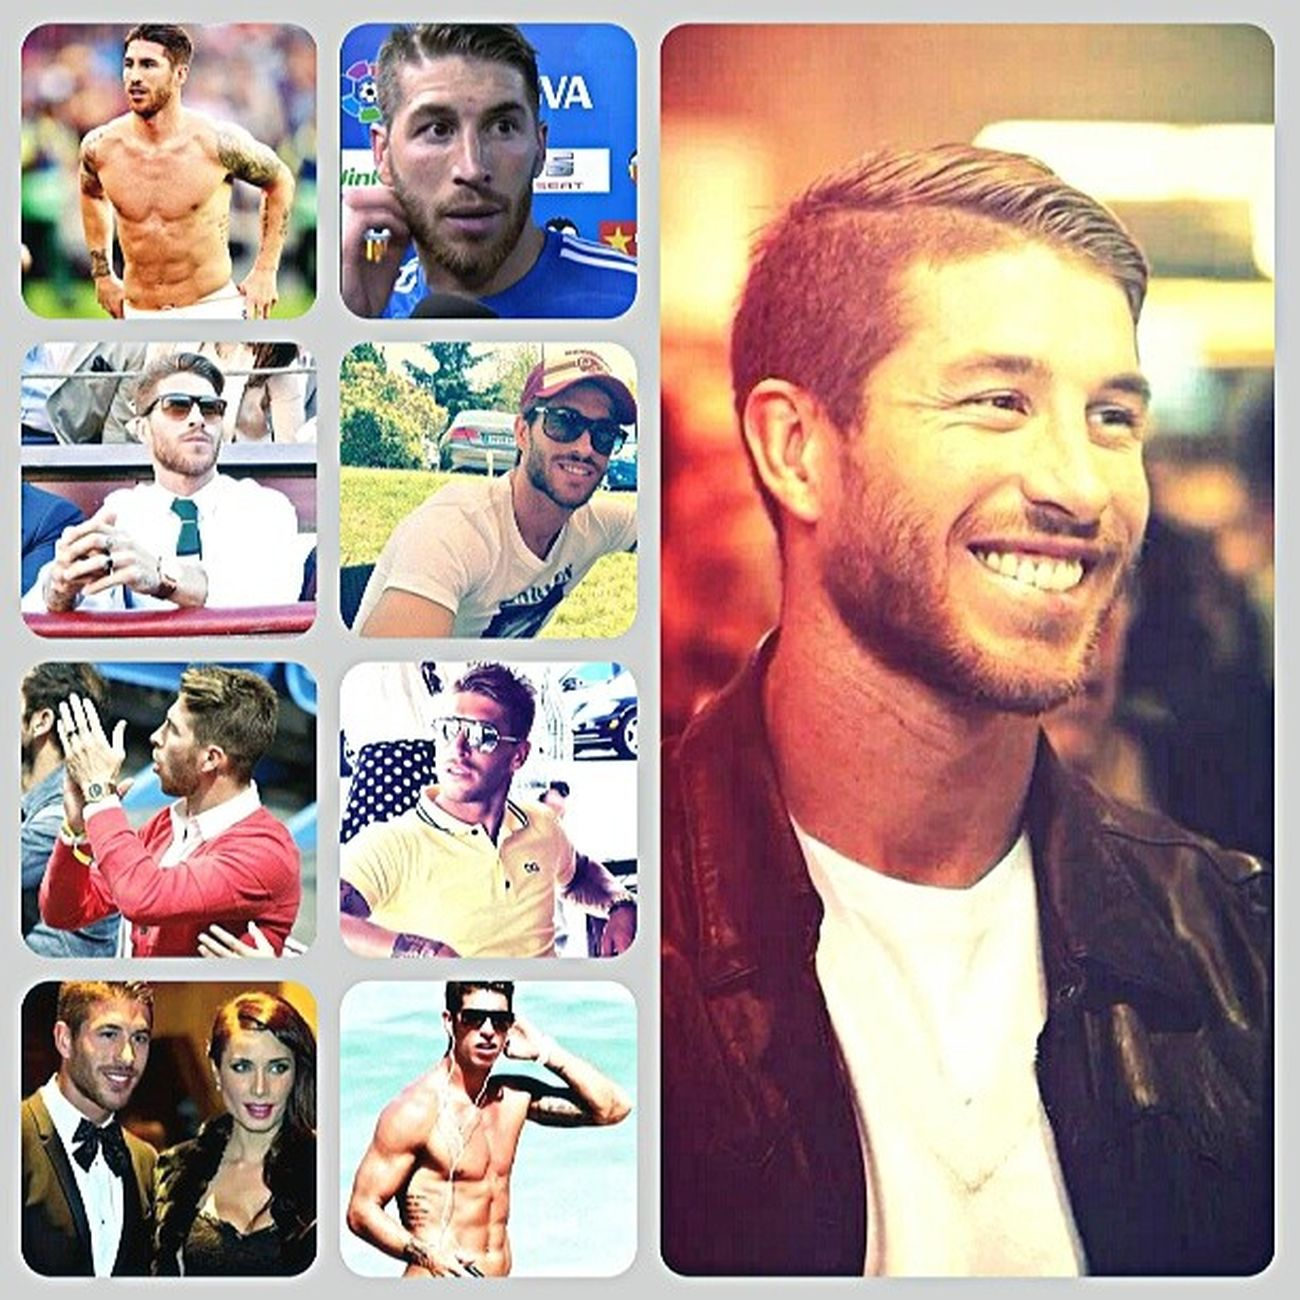 Insta_heart_of_madrid Insta_carzy_about_this_guy Instalion Insta_about_this_smile insta_ehhhhhhala_madrid